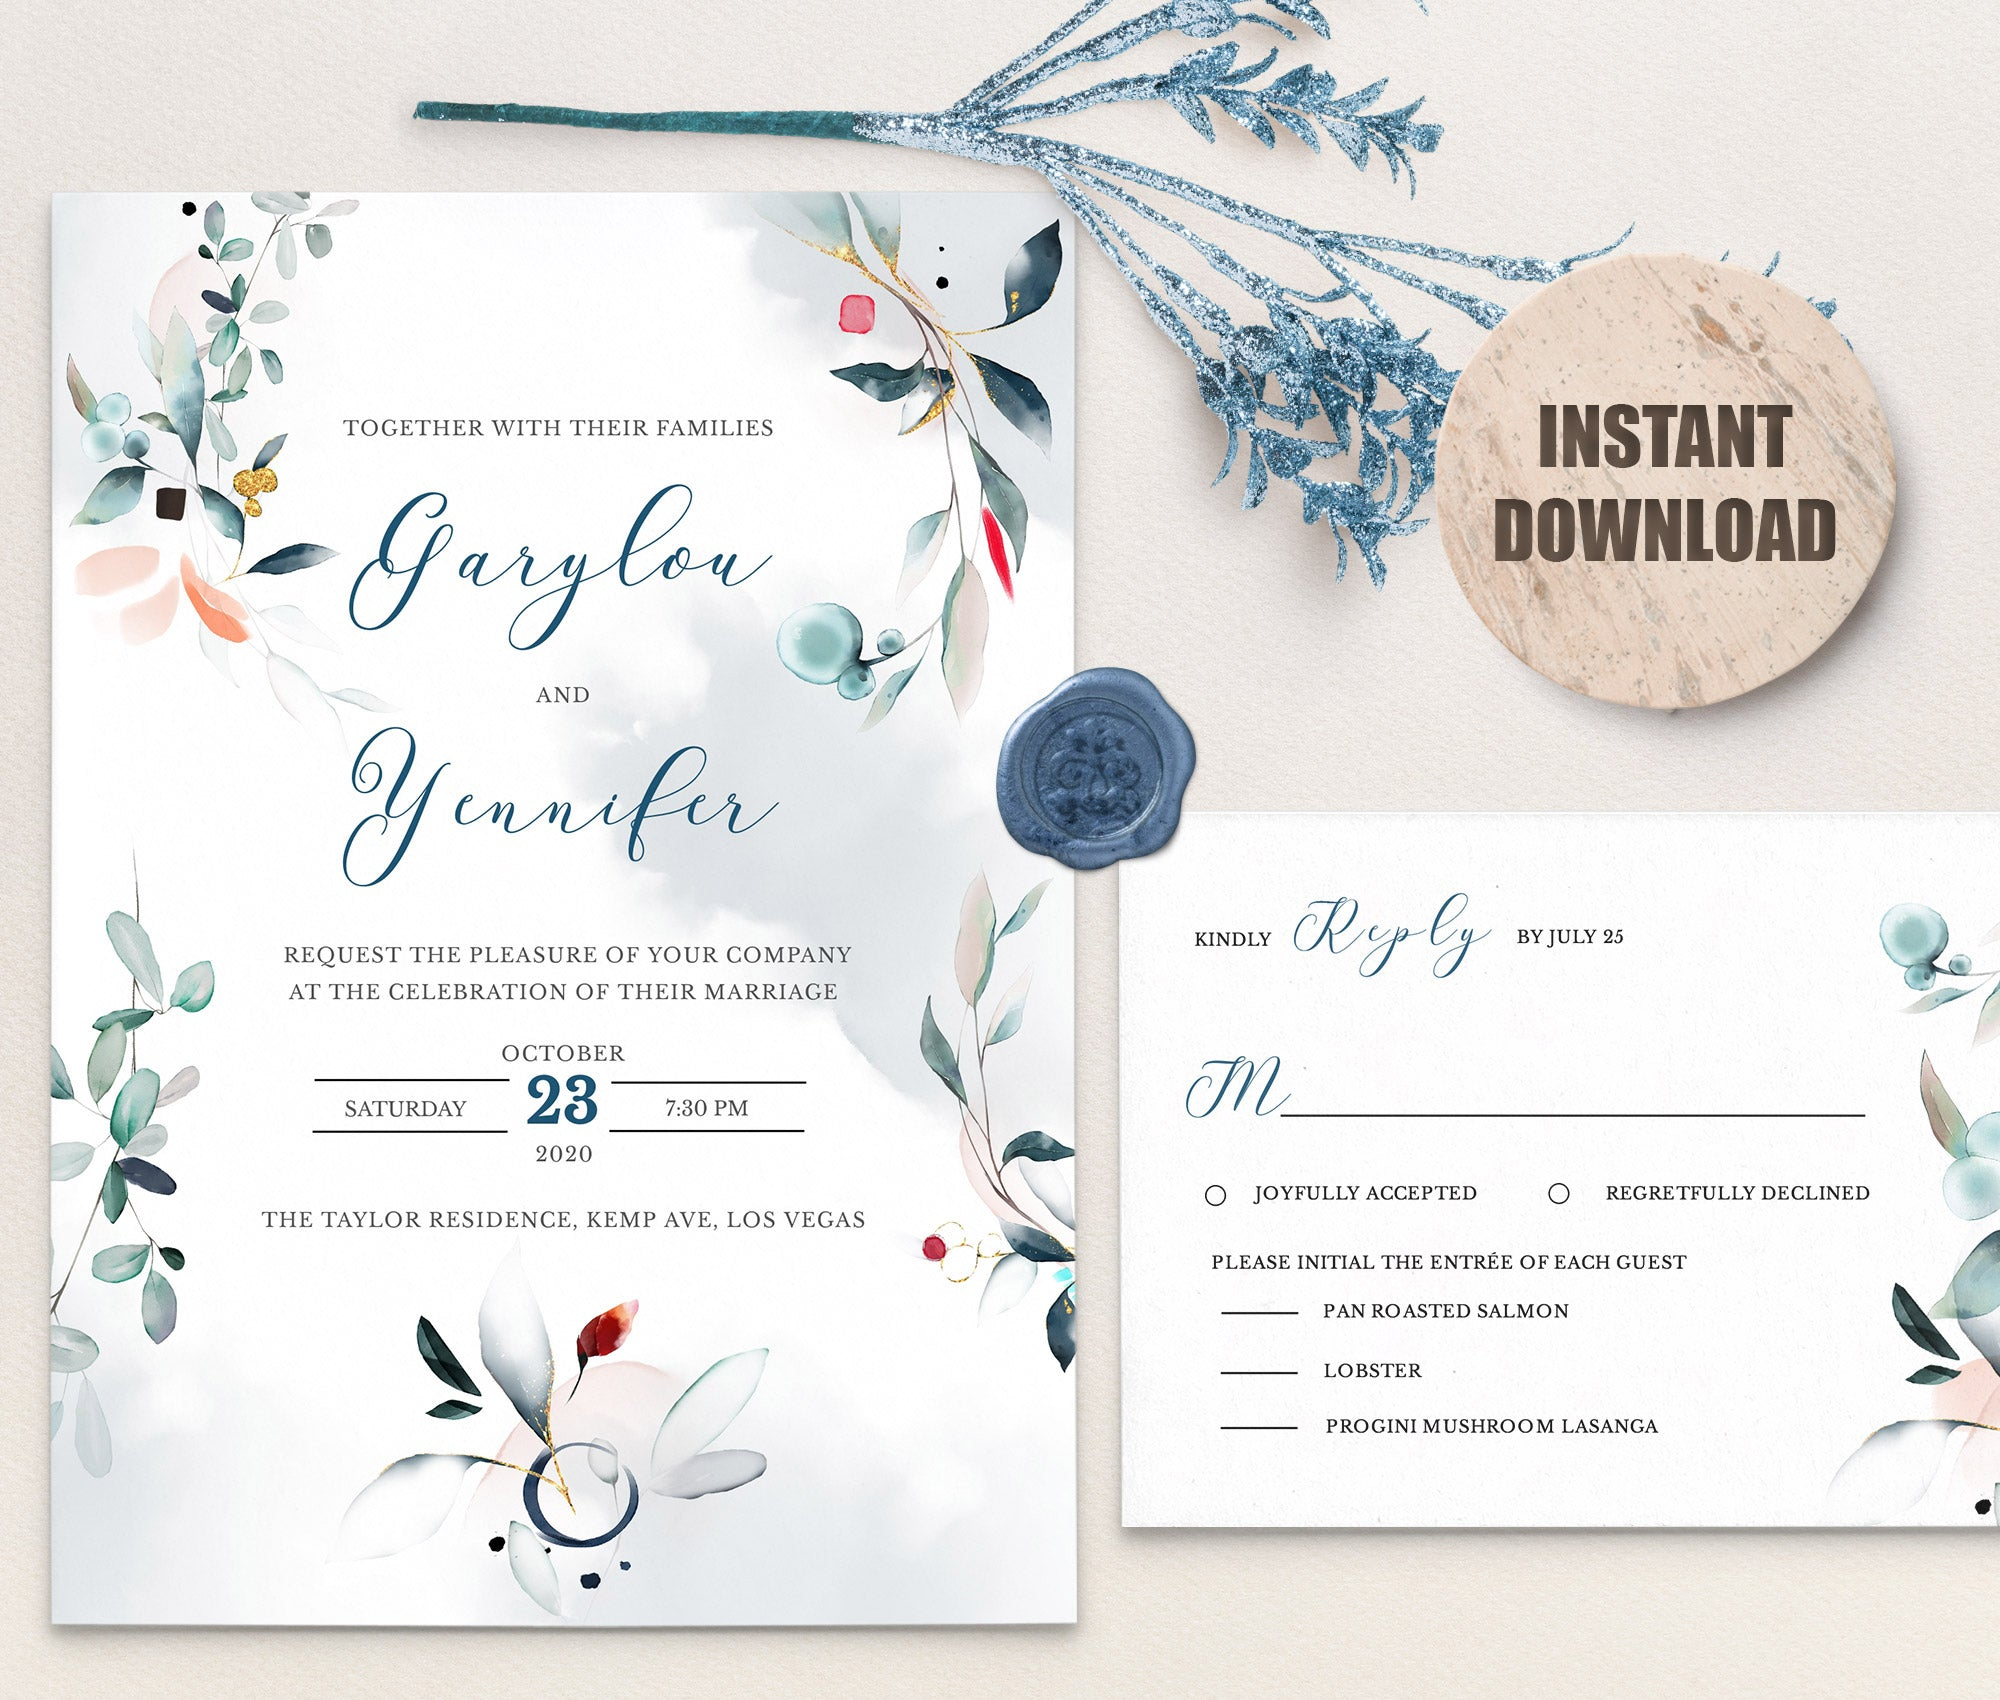 SPMR - Wedding Invitation and RSVP set 10 - Greenlanderdesign